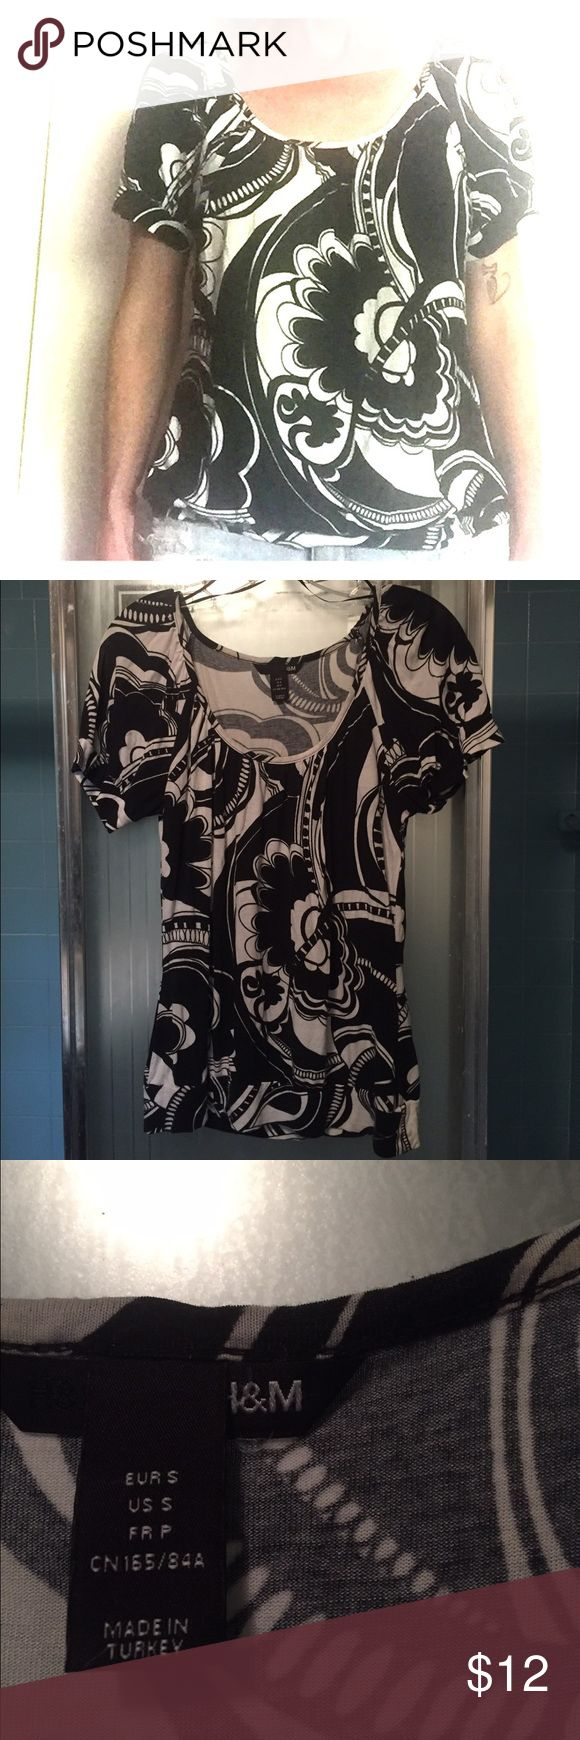 B&W floral tee Cute women's size S black & white floral swirl tee. GUC H&M Tops Tees - Short Sleeve